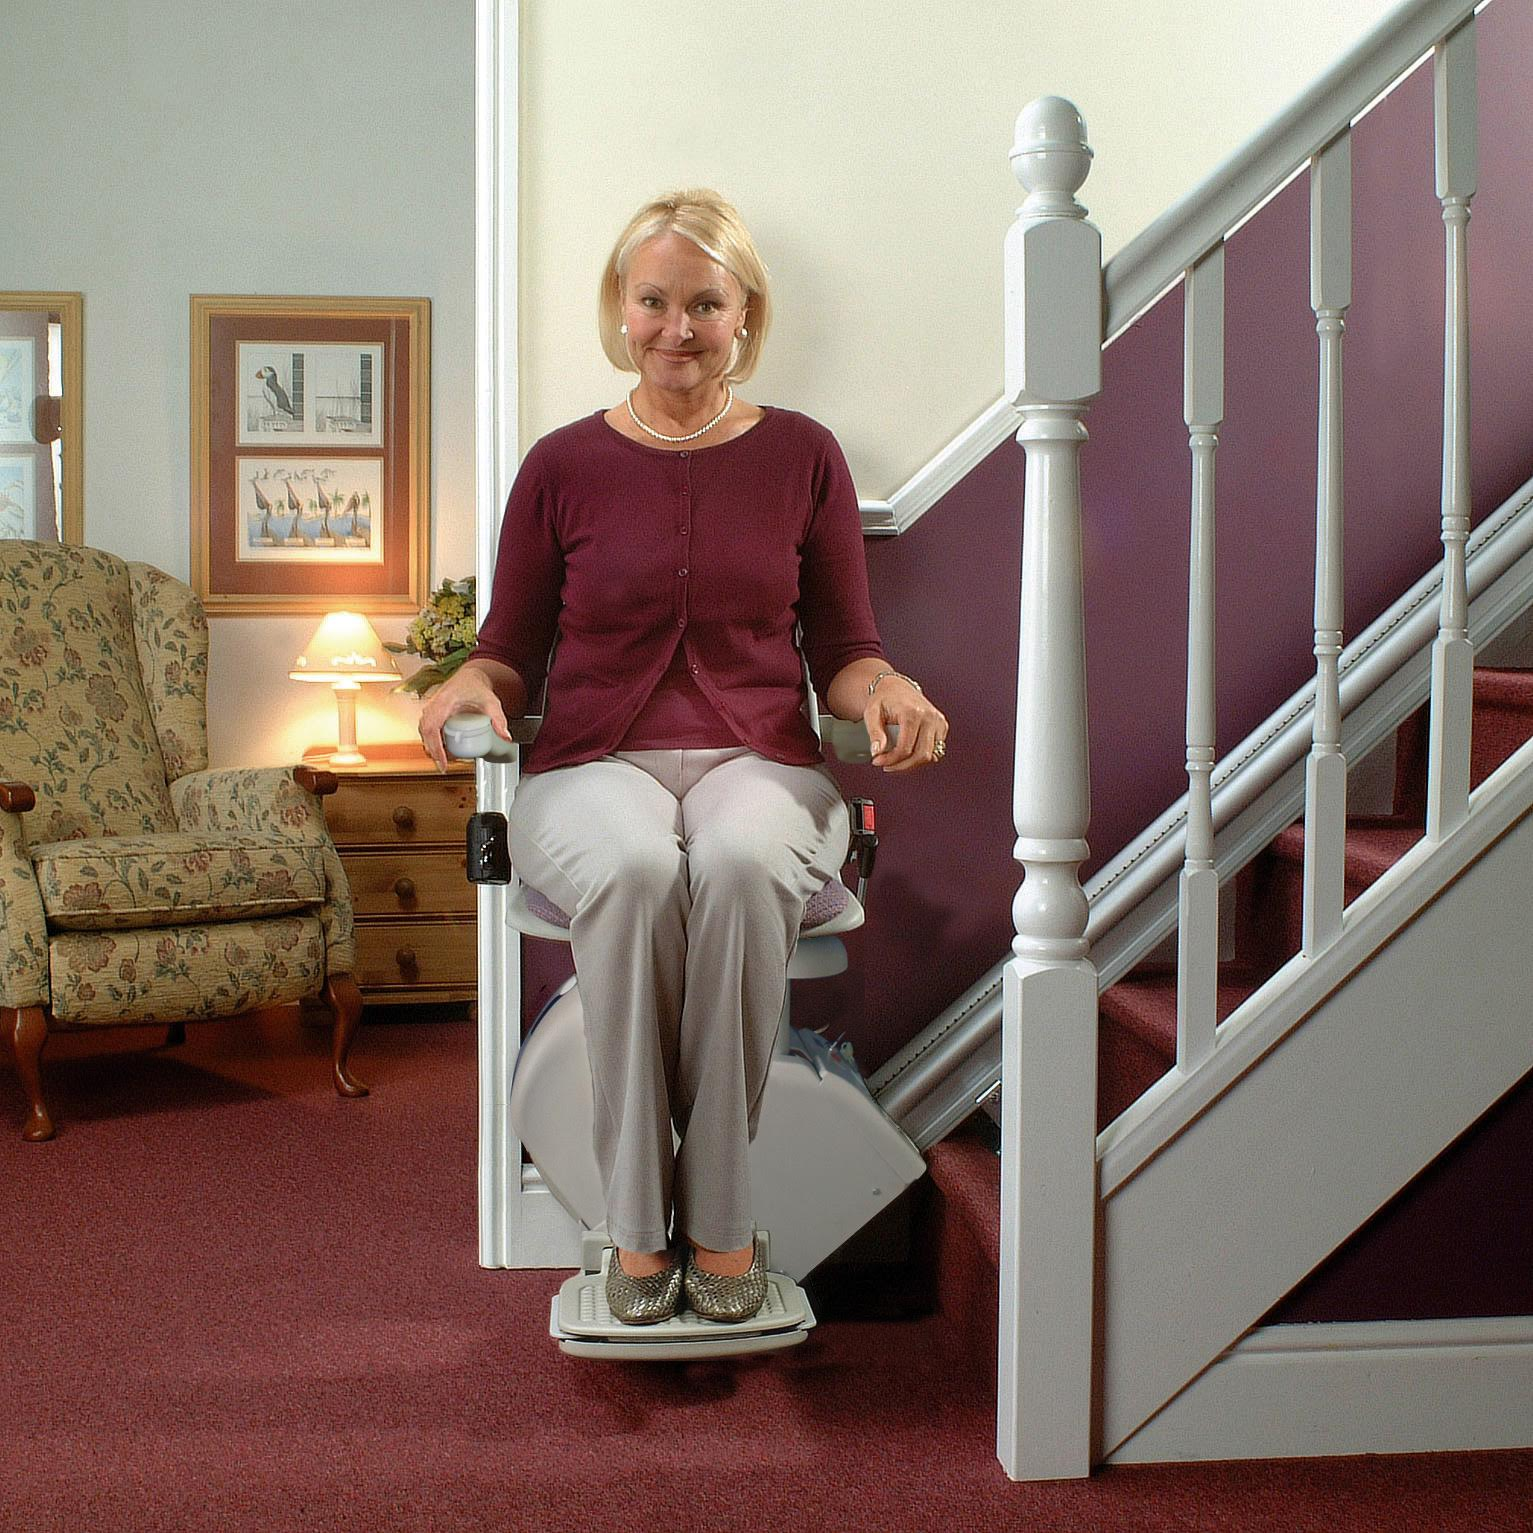 Burbank Stair Lift are home residential indoor stairway staircase glides